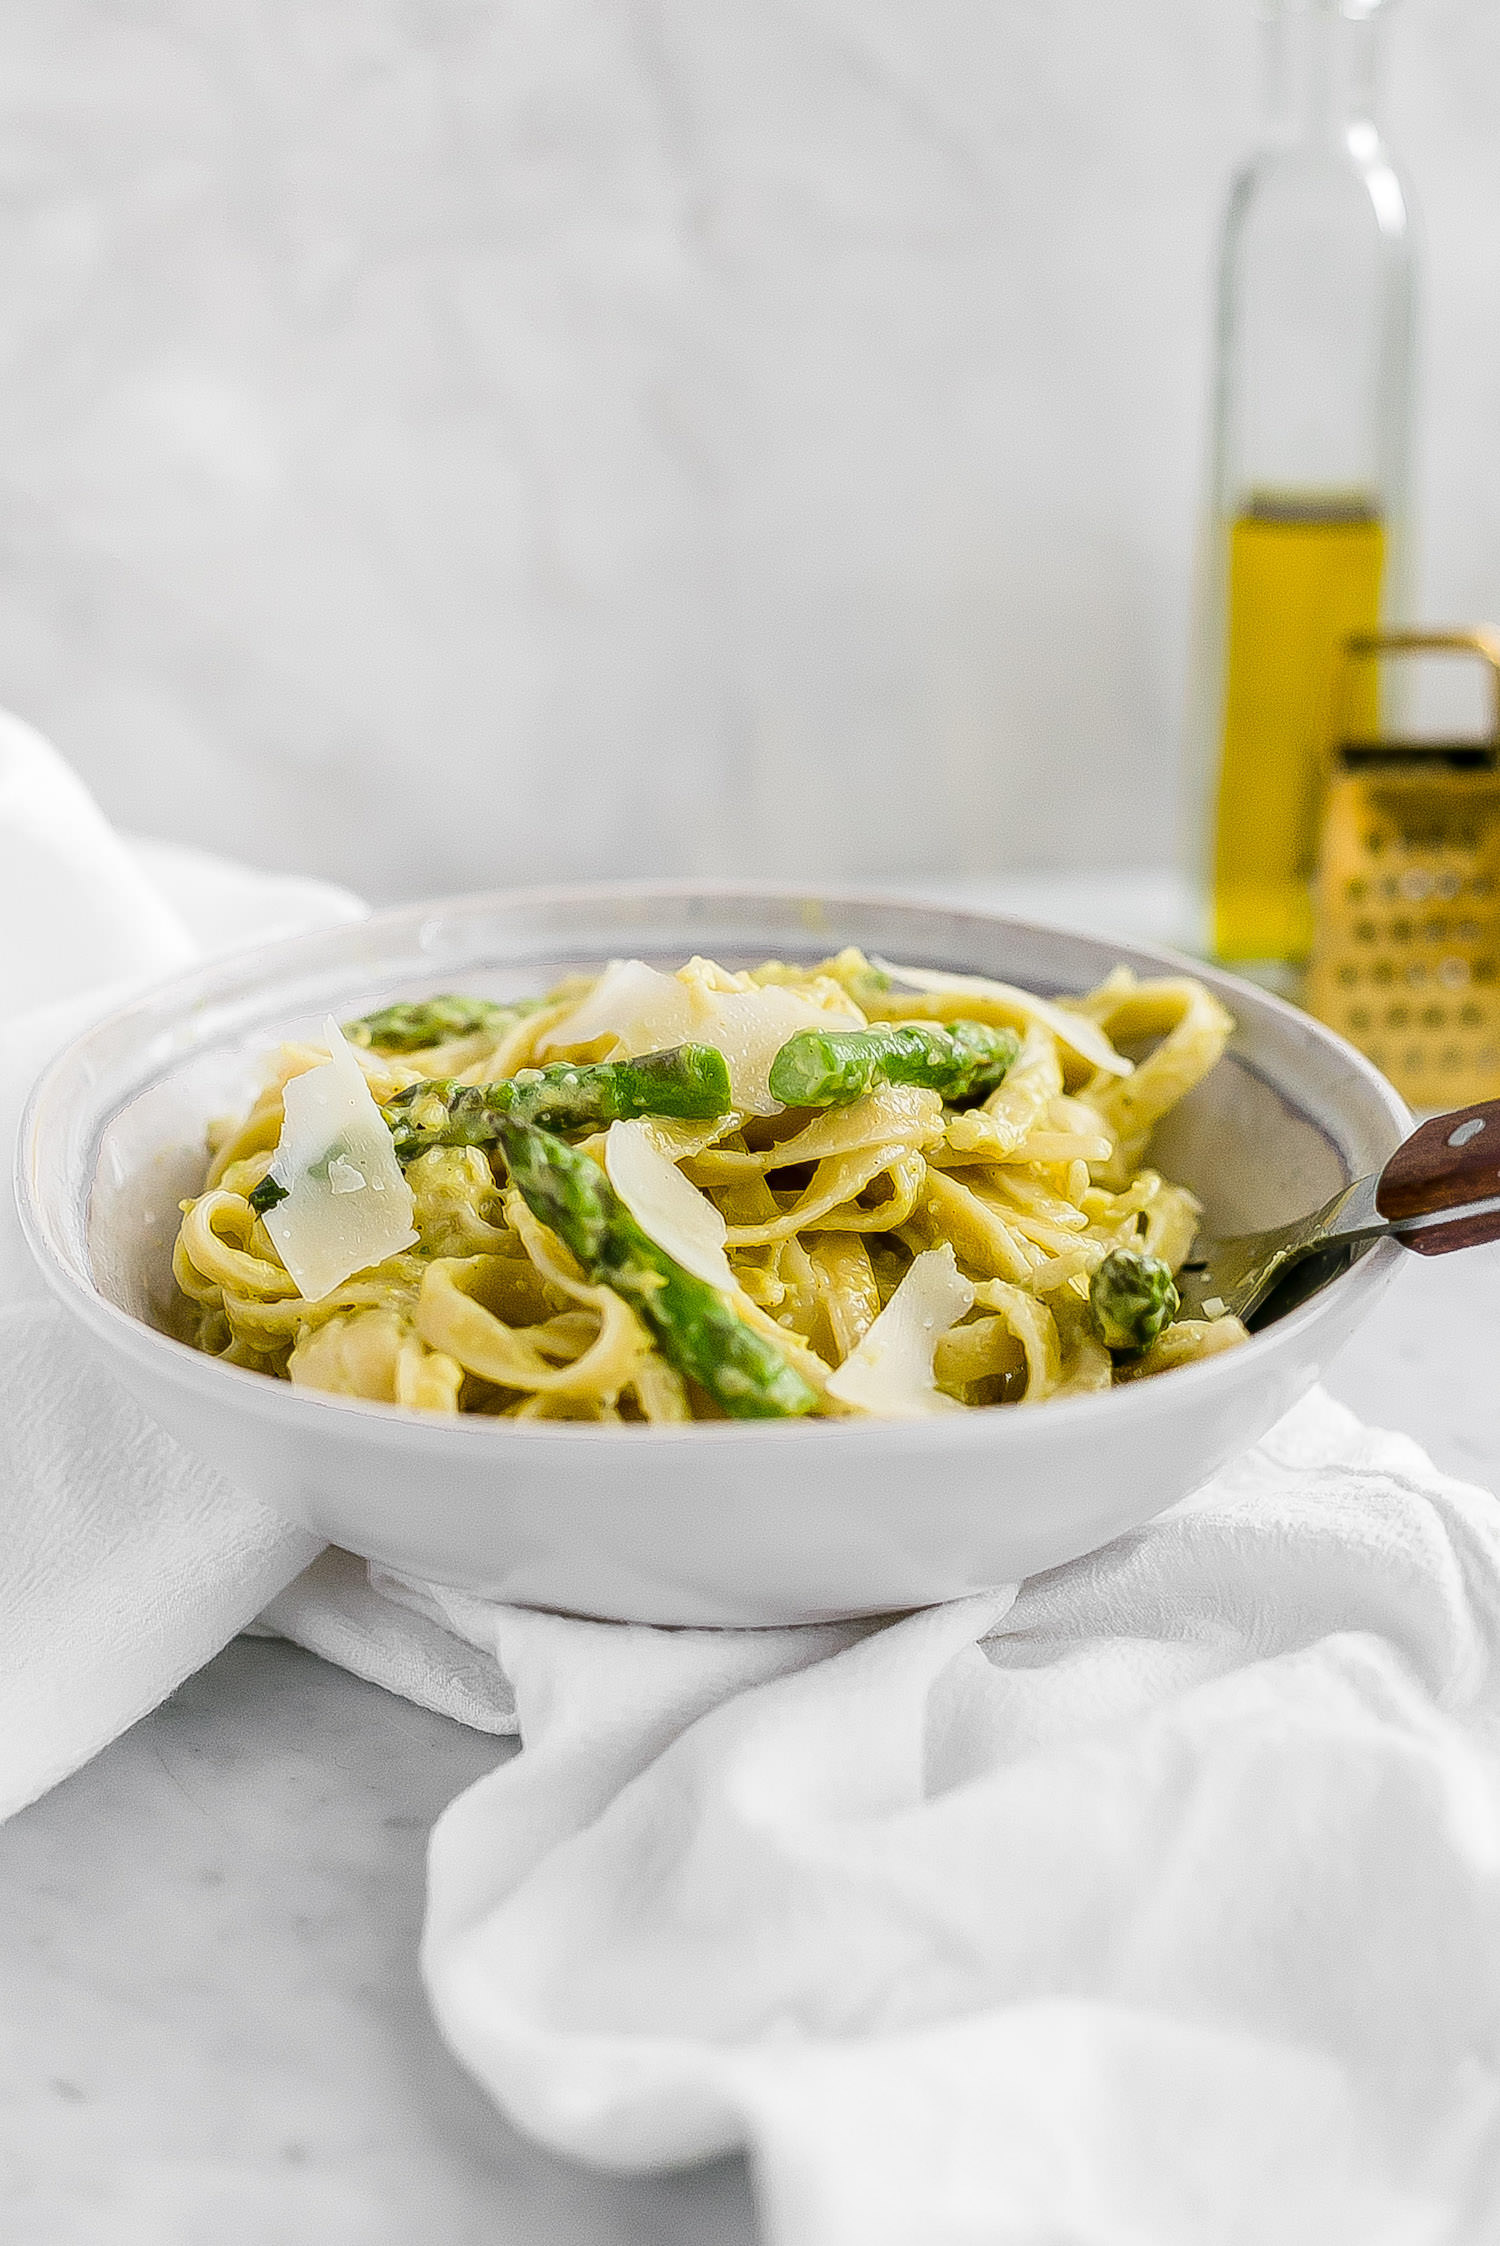 Asparagus Cream Sauce Pasta: pasta made with a creamy, rich, and flavorful cream of asparagus sauce. So unique and delicious!   TrufflesandTrends.com